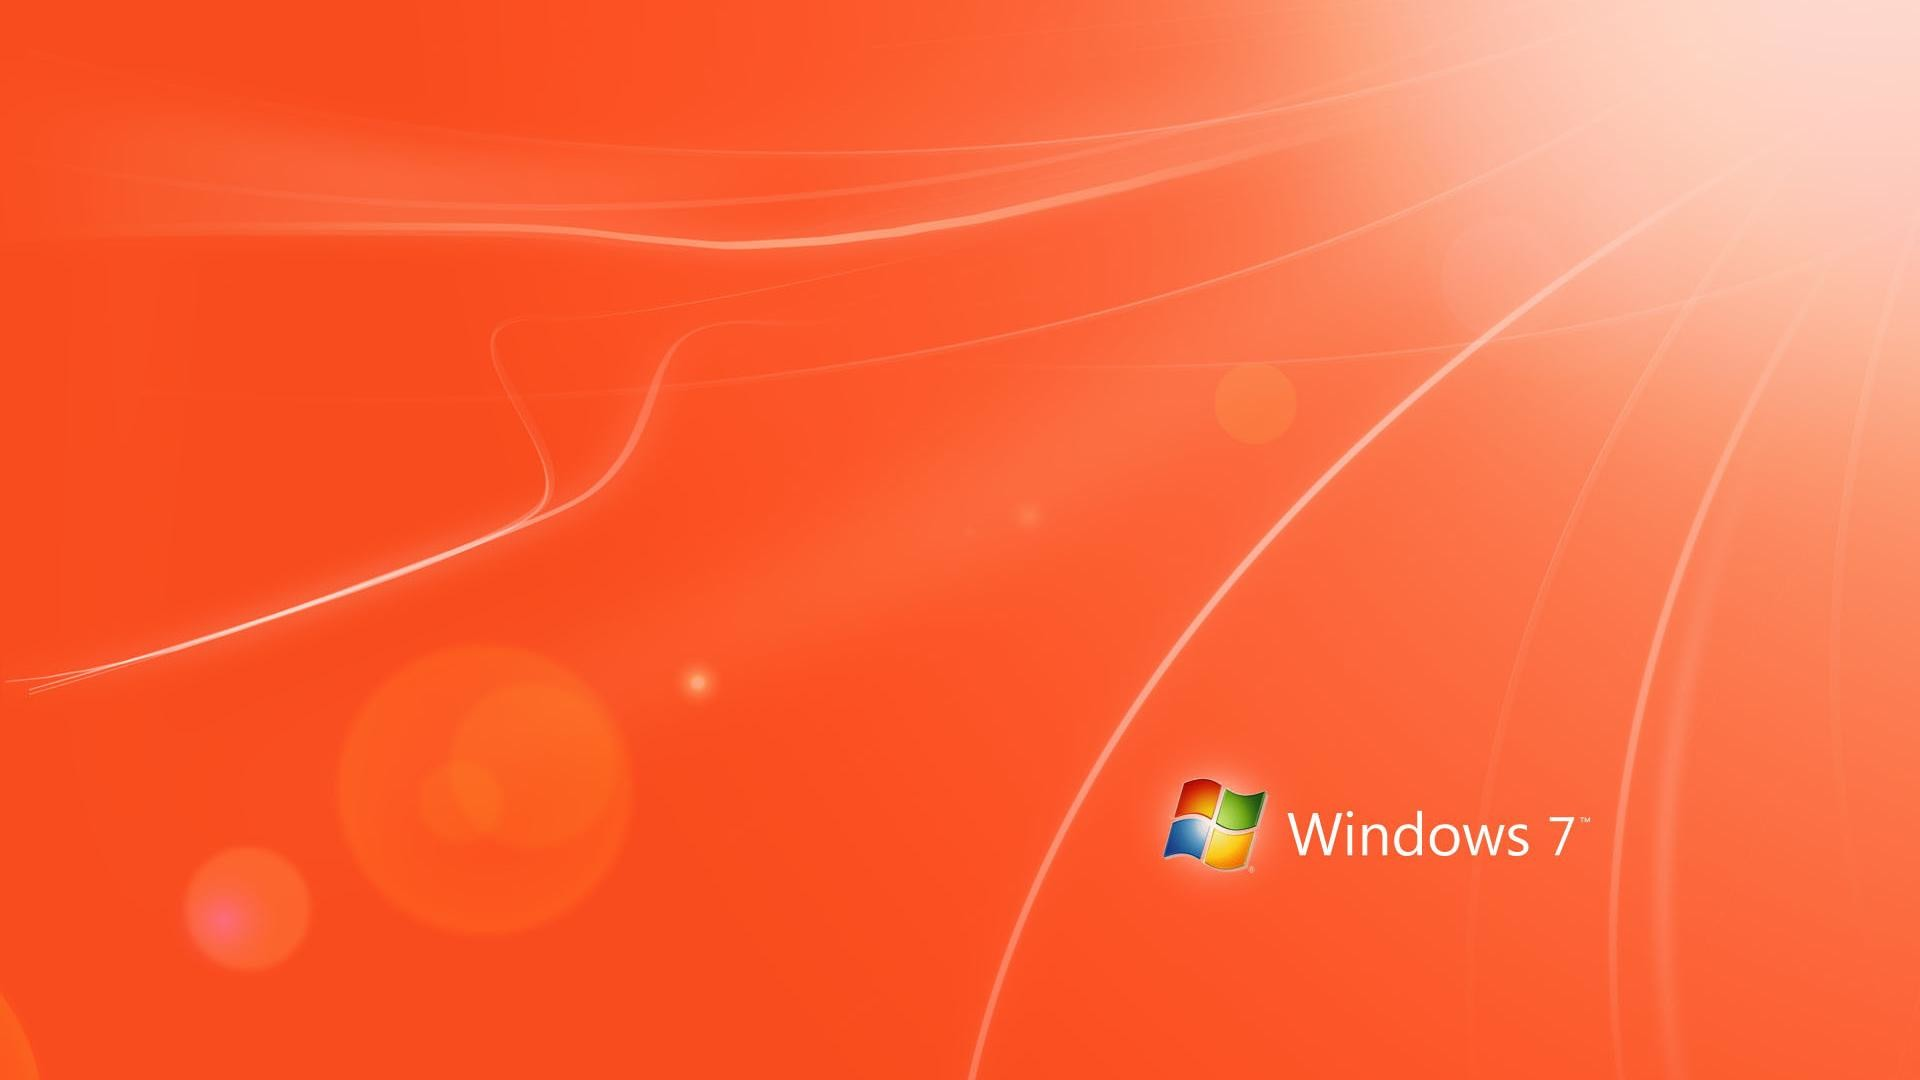 Res: 1920x1080,  Cool red Windows 7 desktop backgrounds wide wallpapers:1280x800,1440x900,1680x1050  -